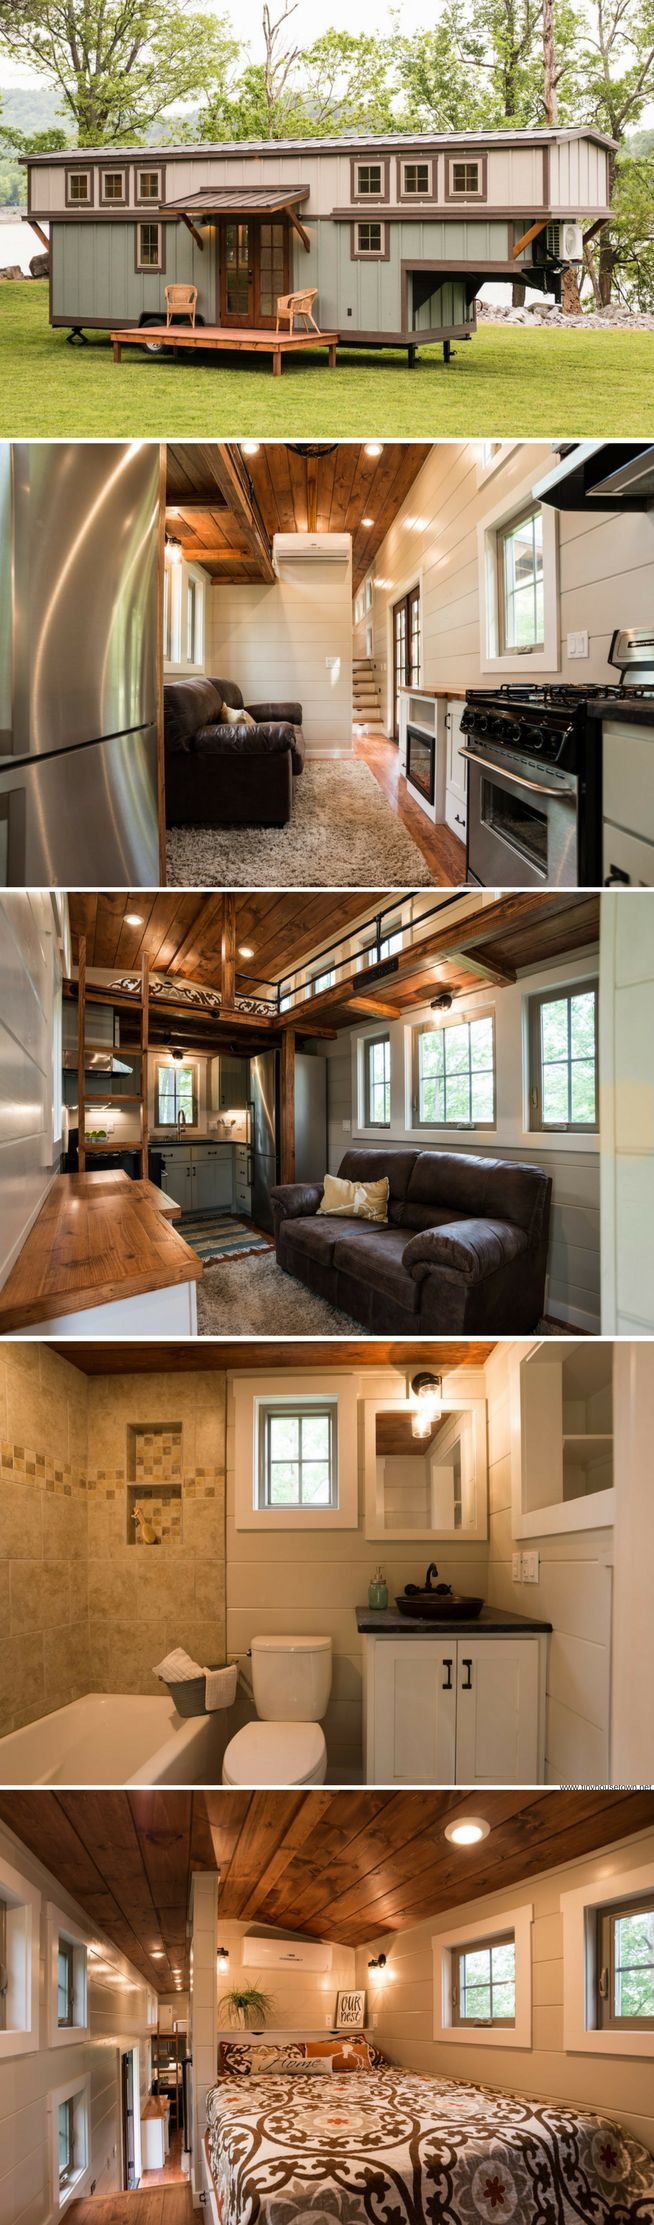 25+ great ideas about Small home interior design on Pinterest